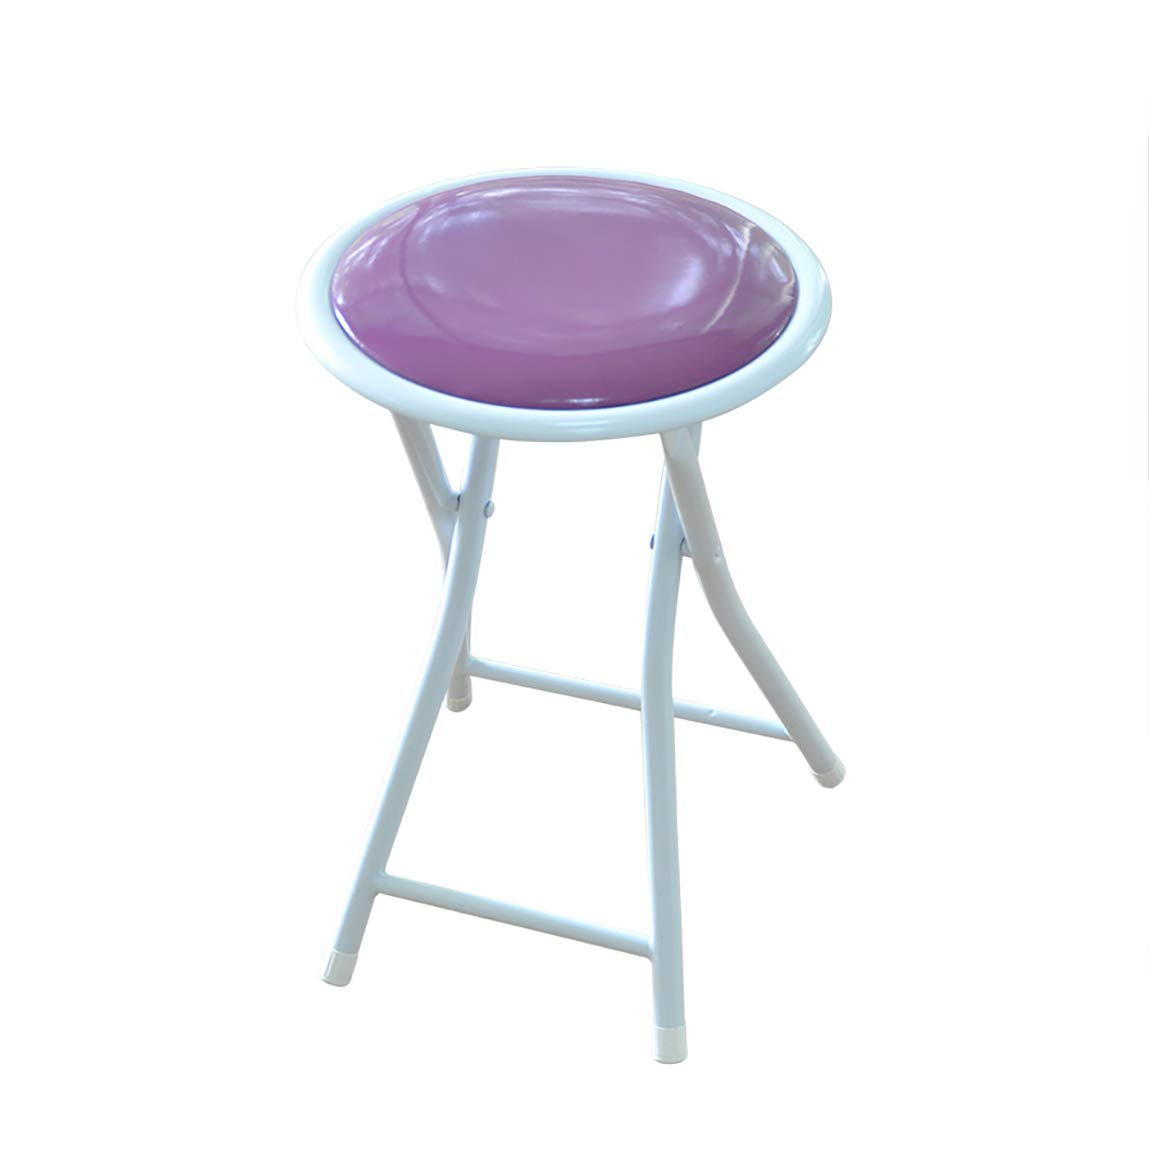 Purple XHLZDY Folding Chair, Dining Chair Folding Stool Portable Chair Small Round Bench (30×30×43cm) (color   White)